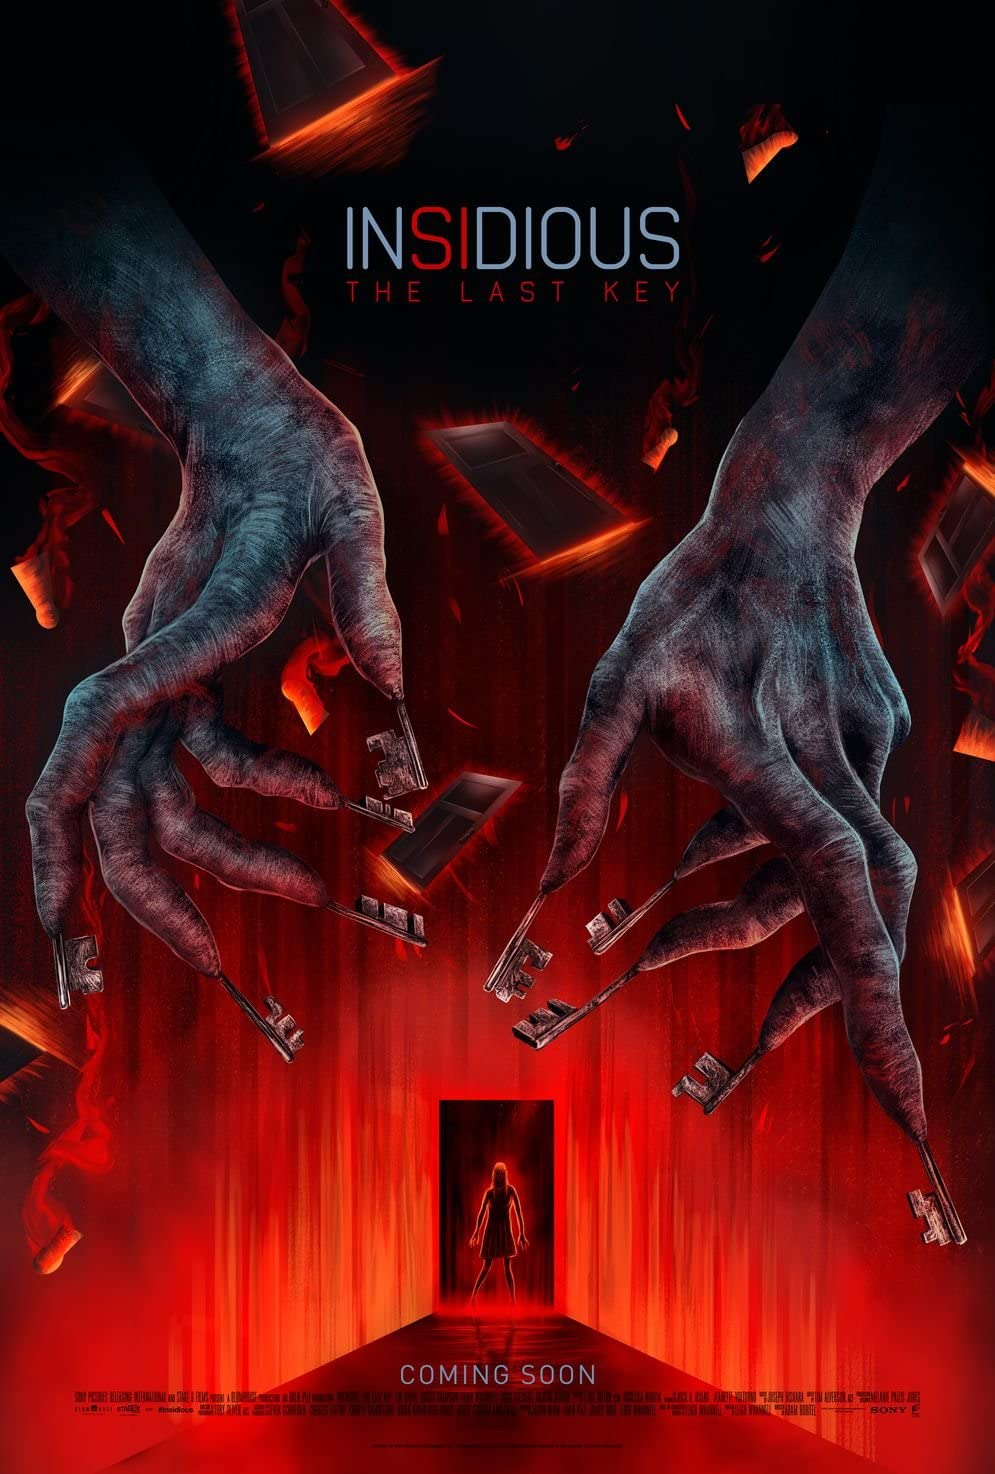 Insidious The Last Key Movie Poster 18 x 28 Inches